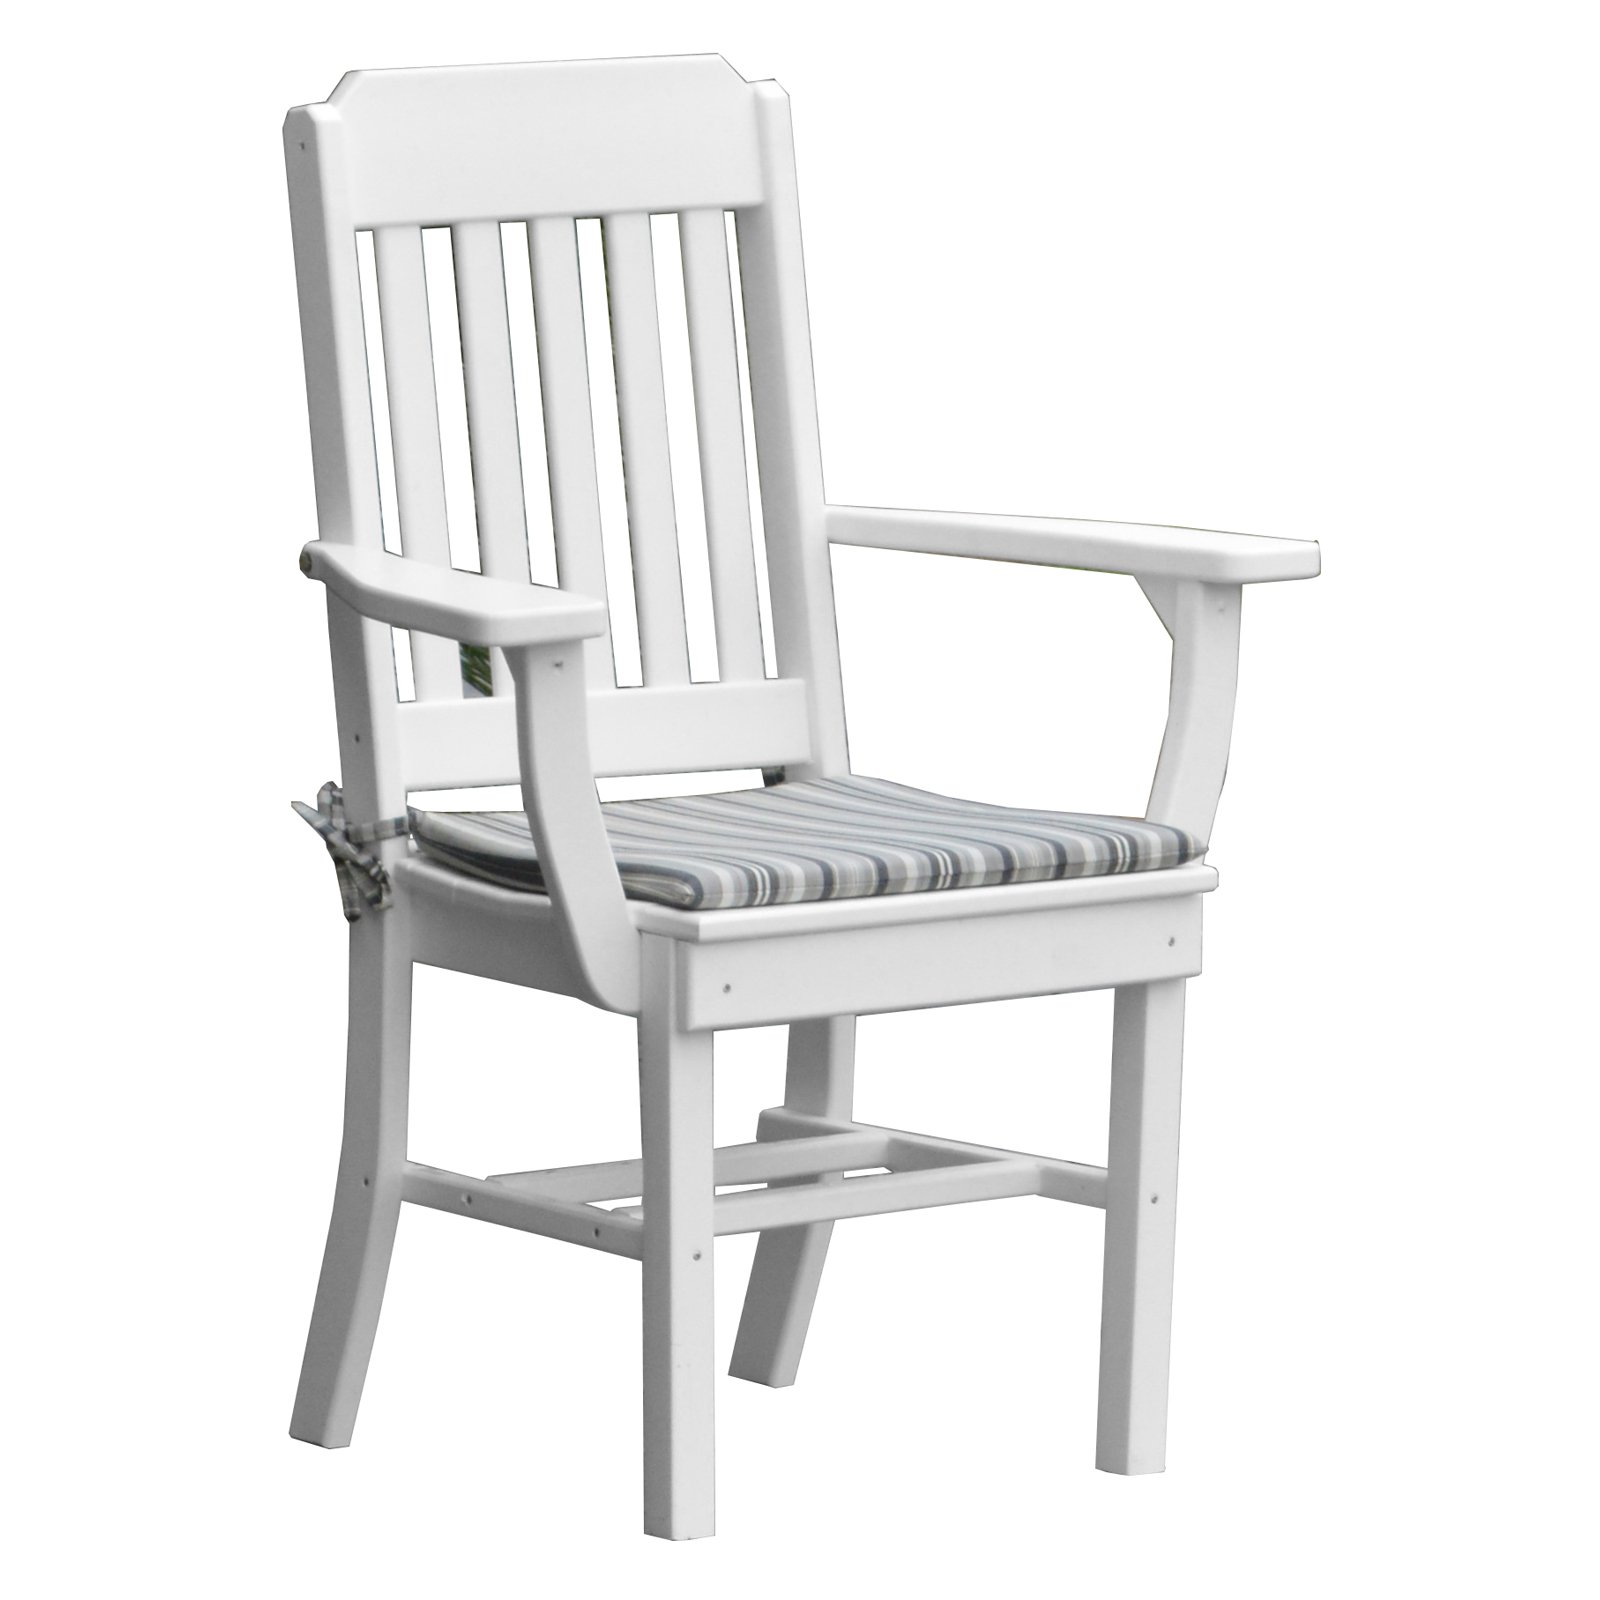 Radionic Hi Tech Cambridge Recycled Plastic Straight Back Patio Dining Armchair by